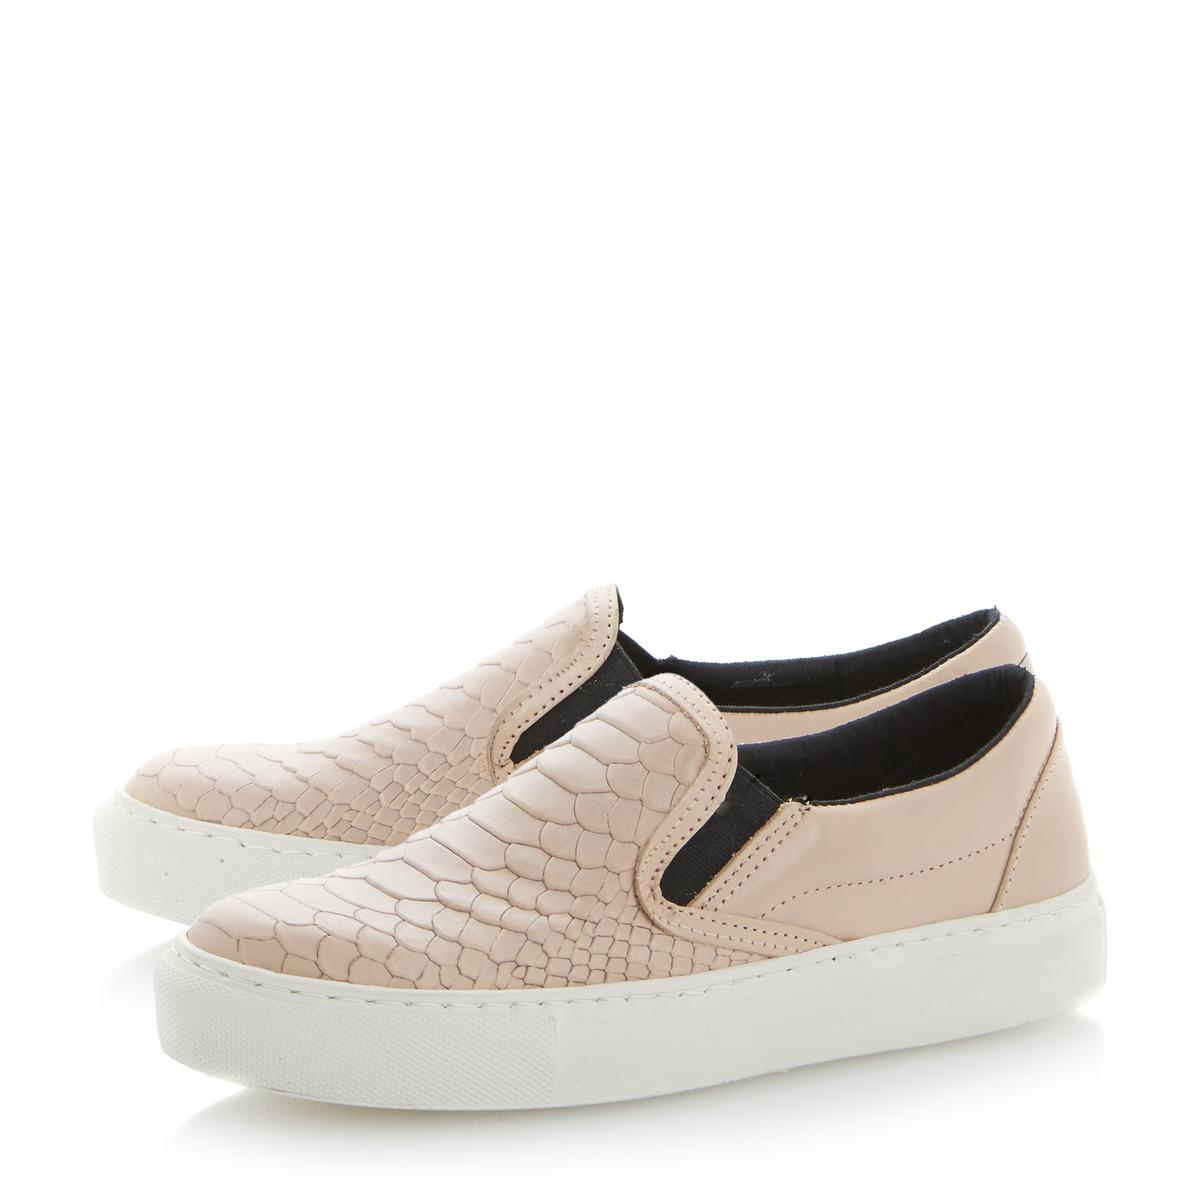 Nude Womens Shoes - FREE Shipping Exchanges